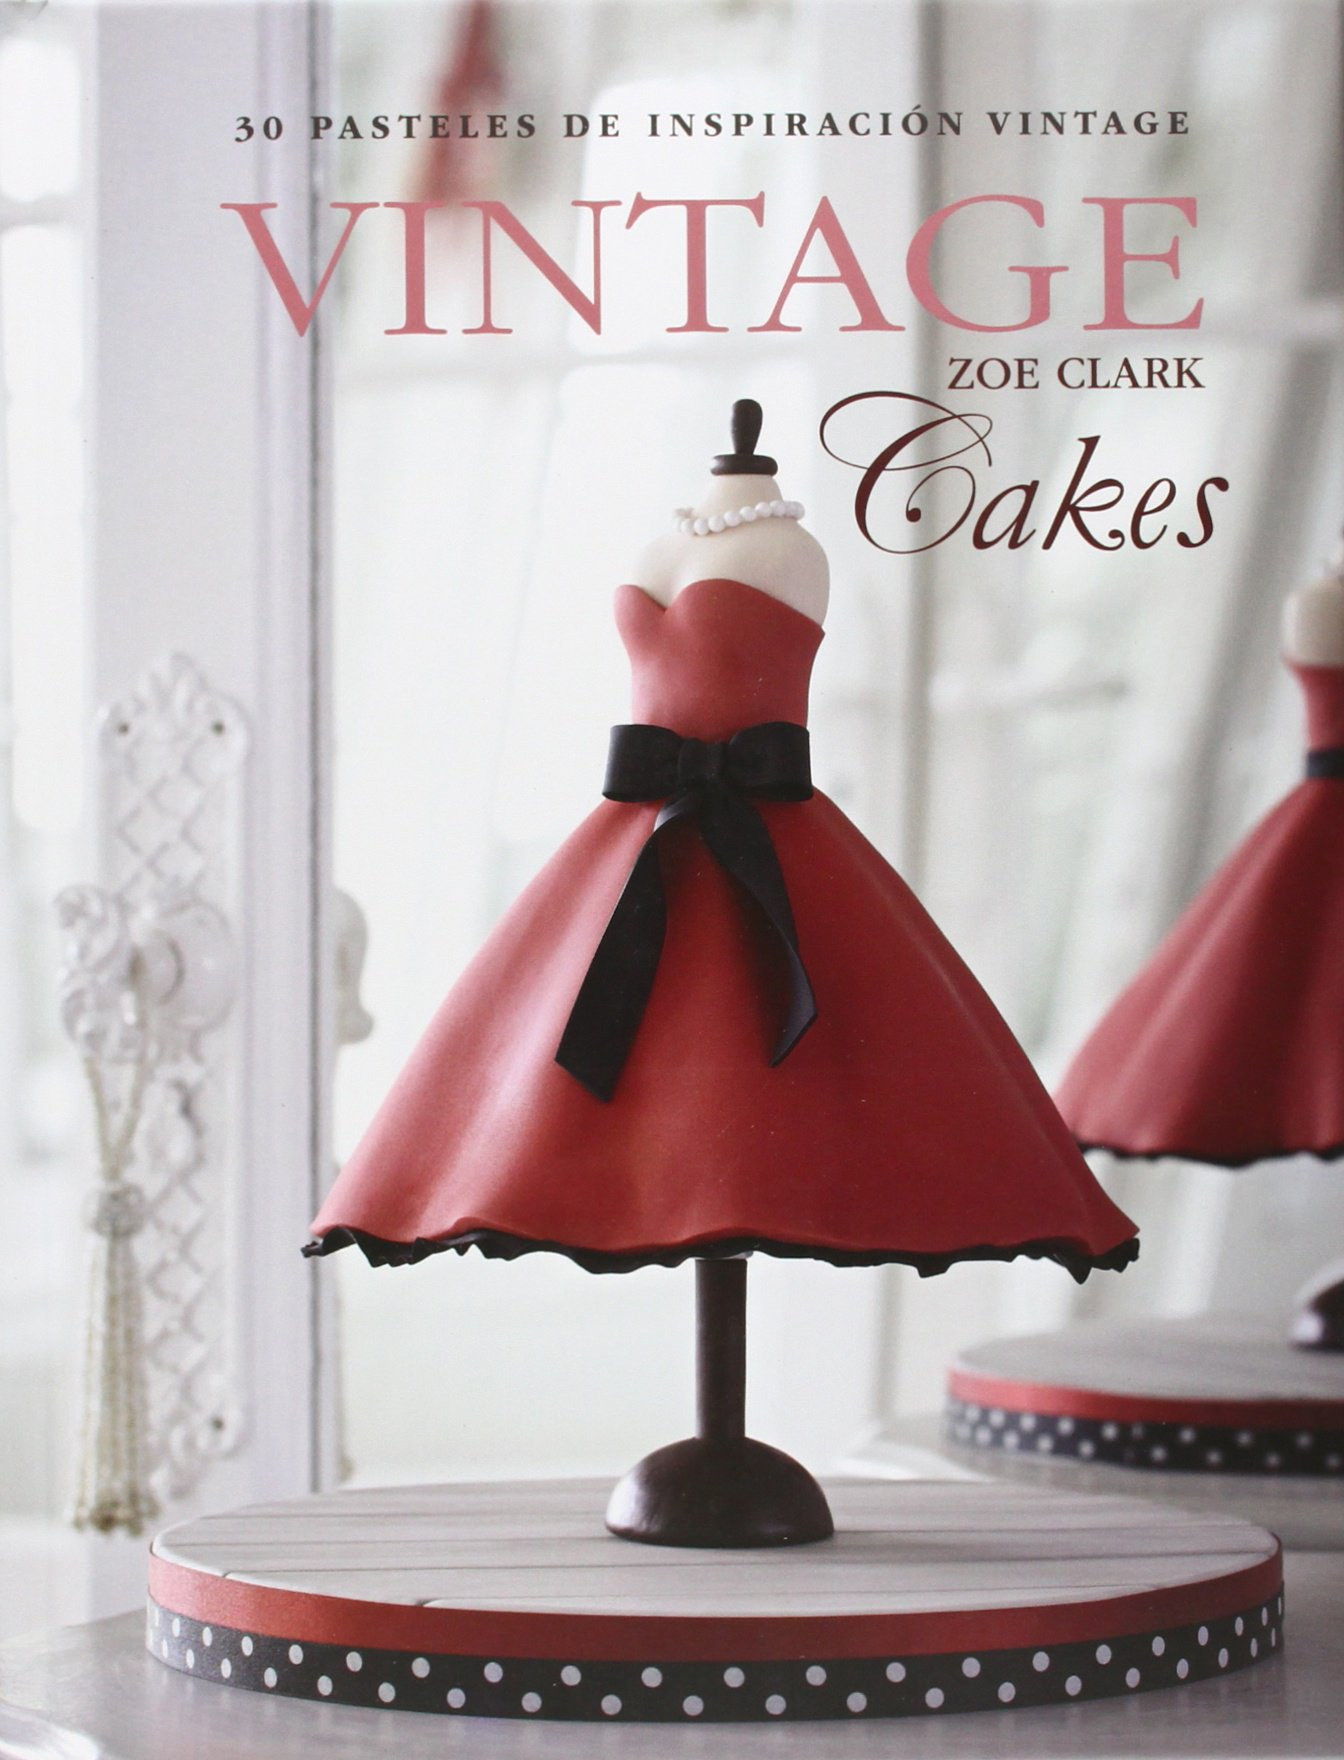 Vintage Cakes (Spanish Edition): Zoe Clark, Juventud: 9788426141095: Amazon.com: Books